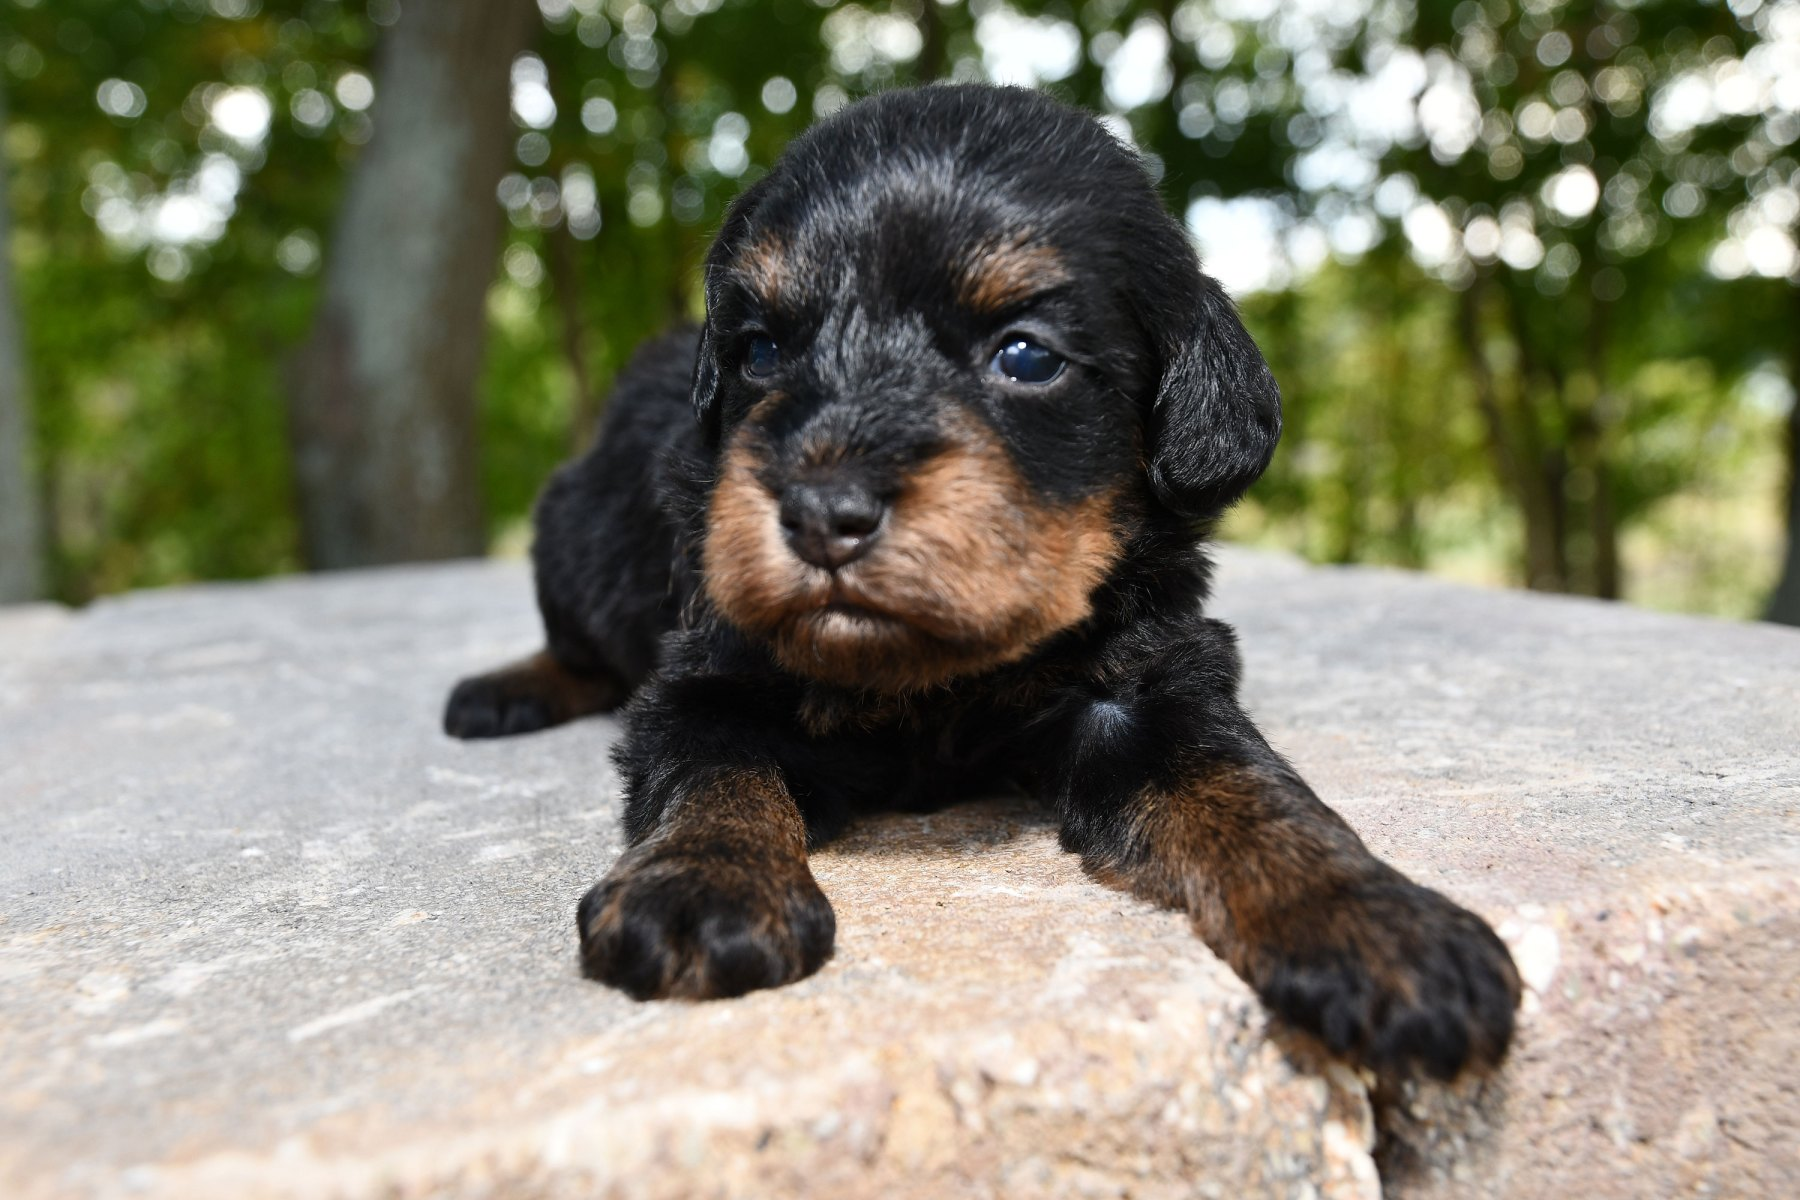 20190930_All-Pups-9-30_6012